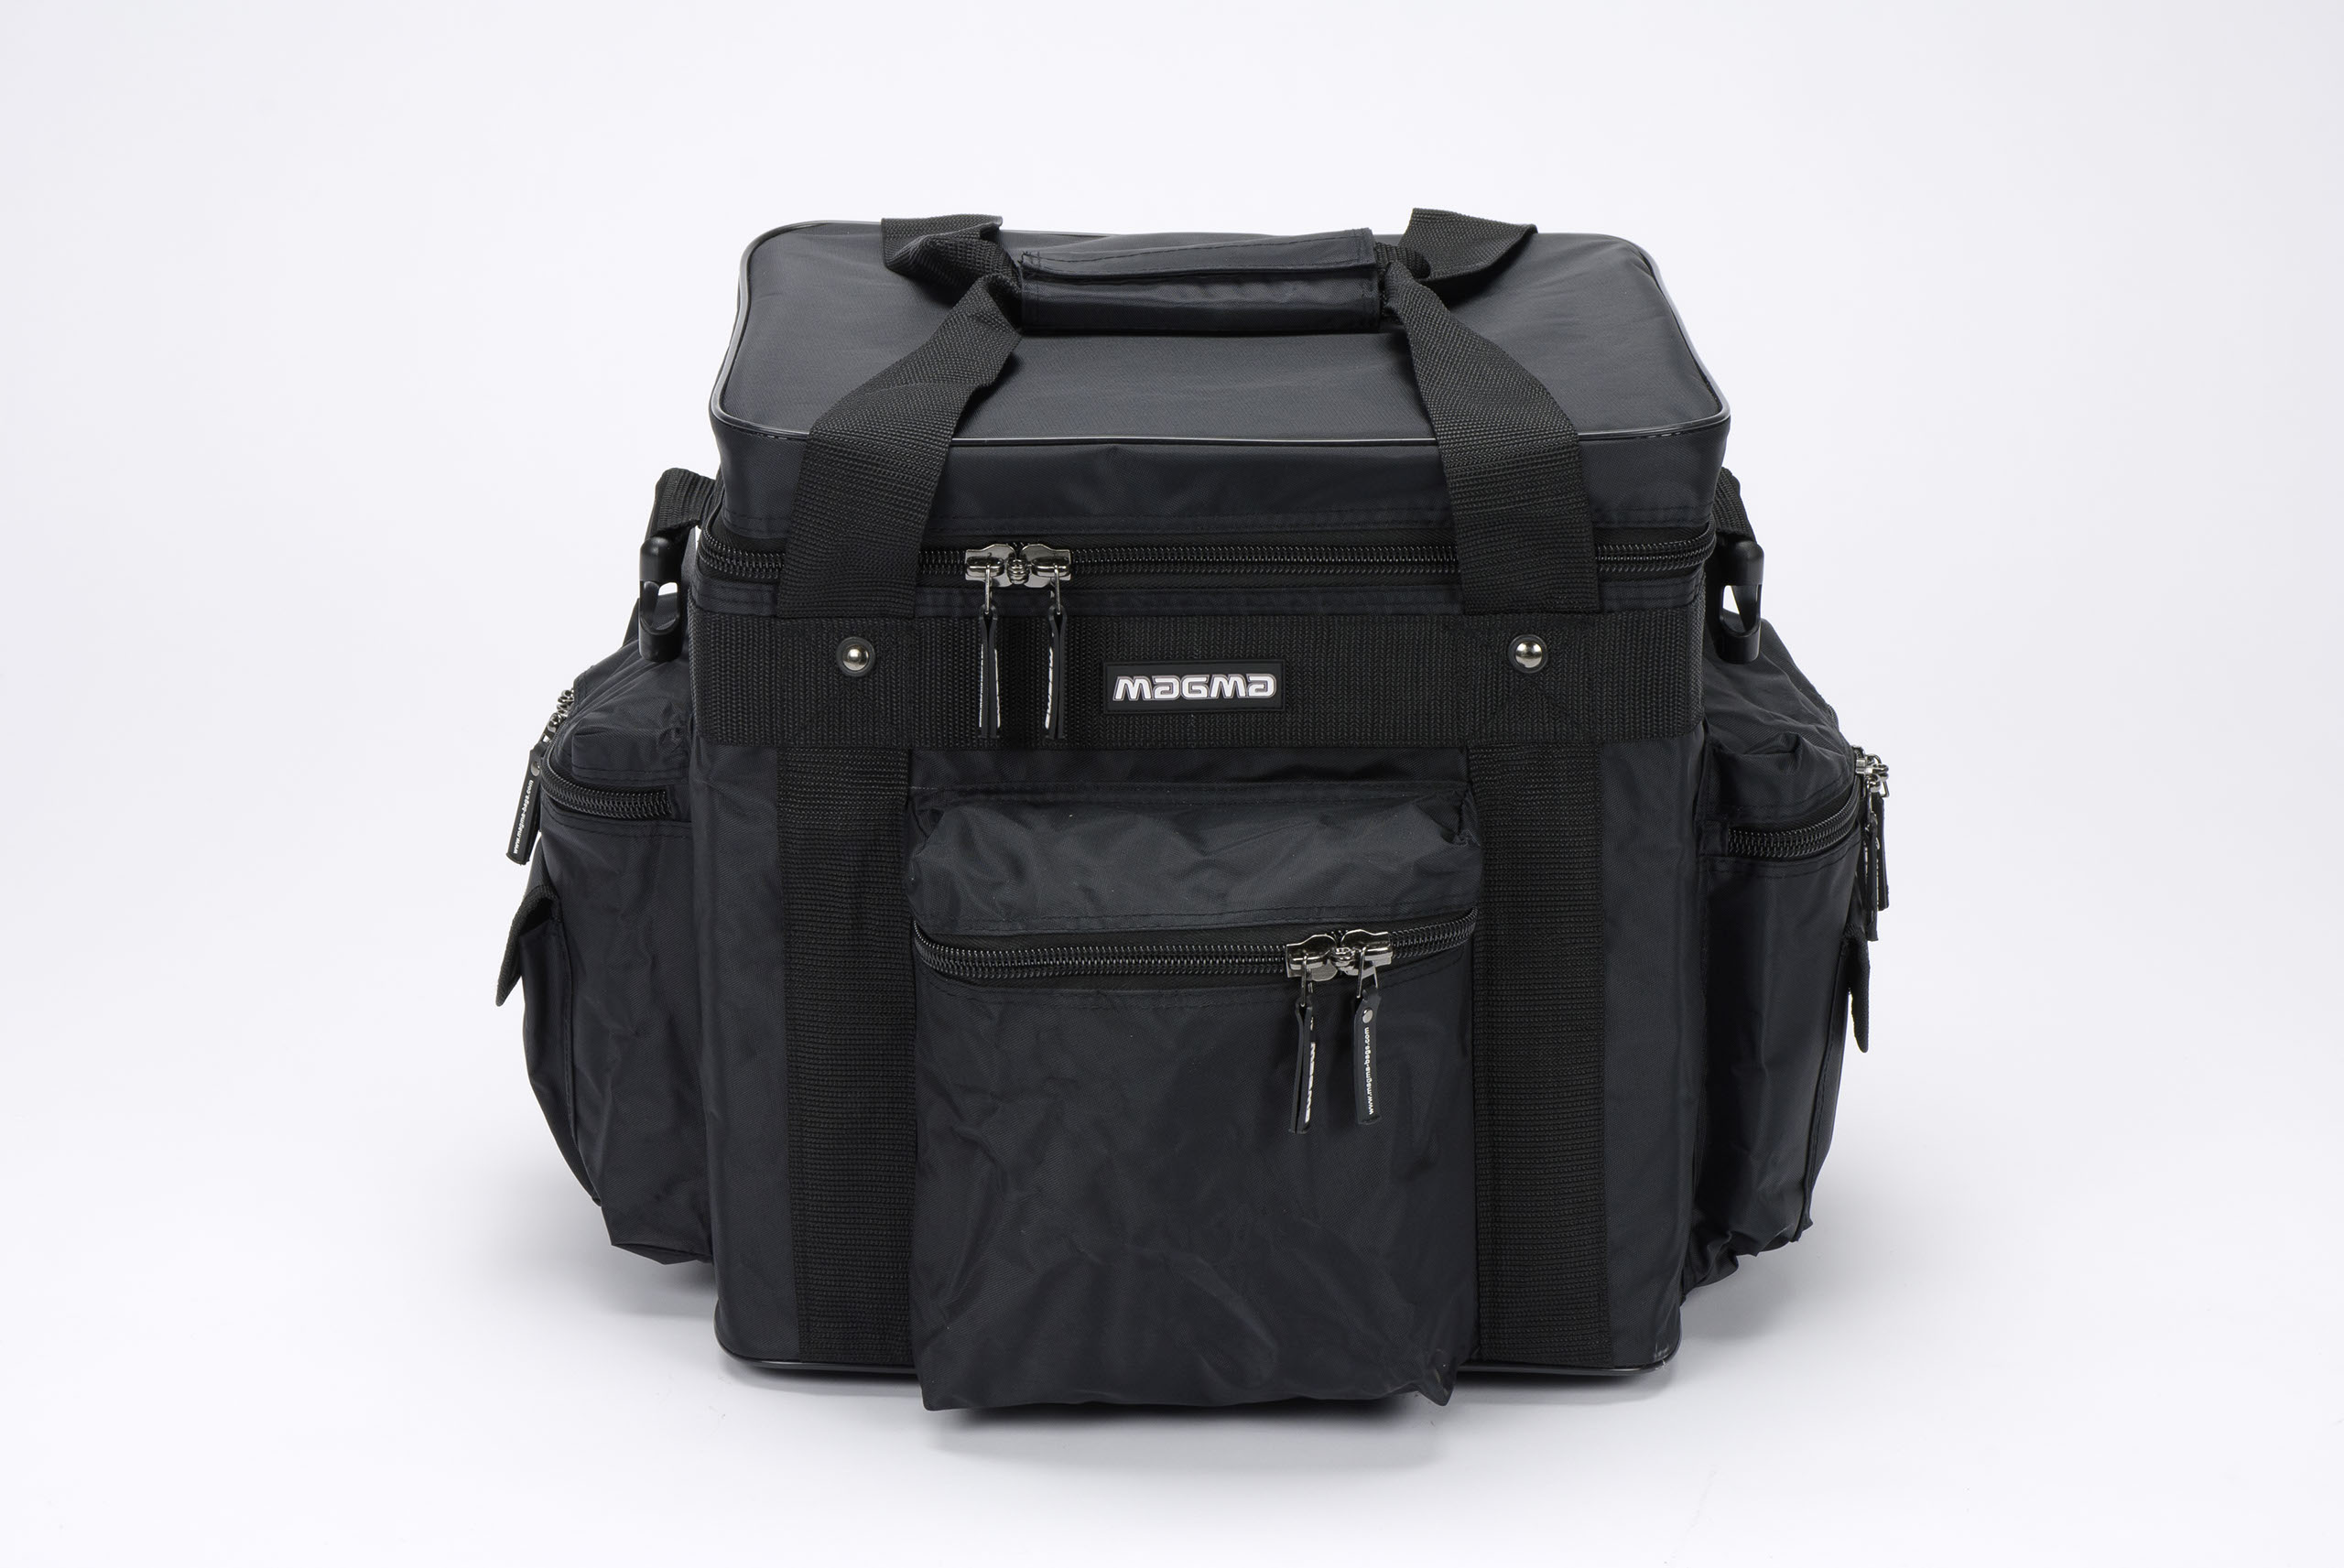 Magma LP-Bag 100 Profi black/black 241119